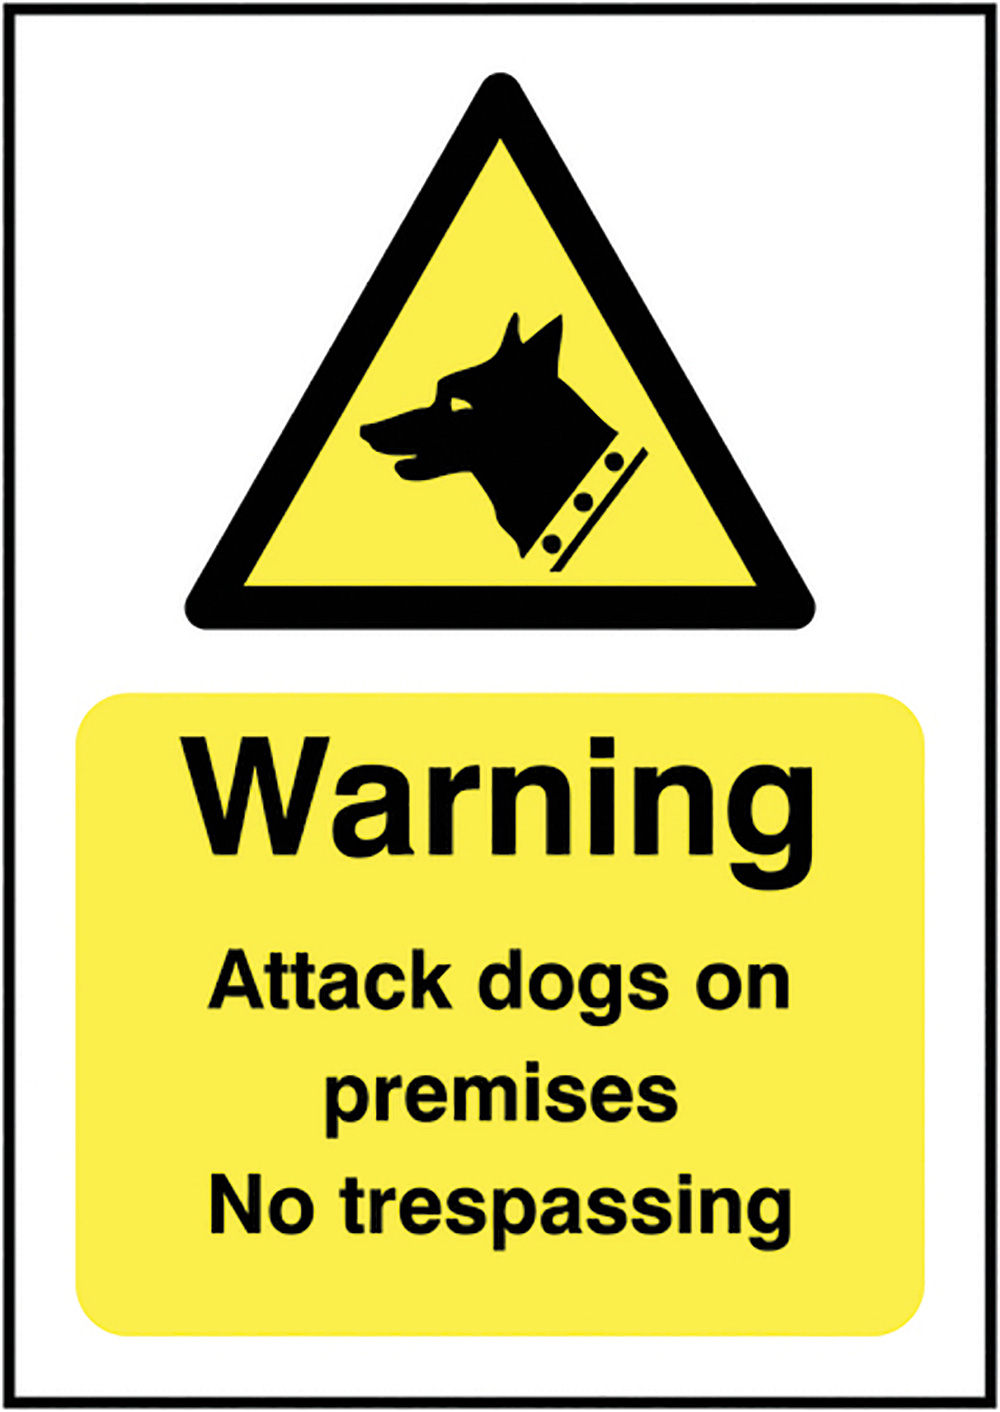 Caution Guard Dogs on Patrol  420x297mm Self Adhesive Vinyl Safety Sign